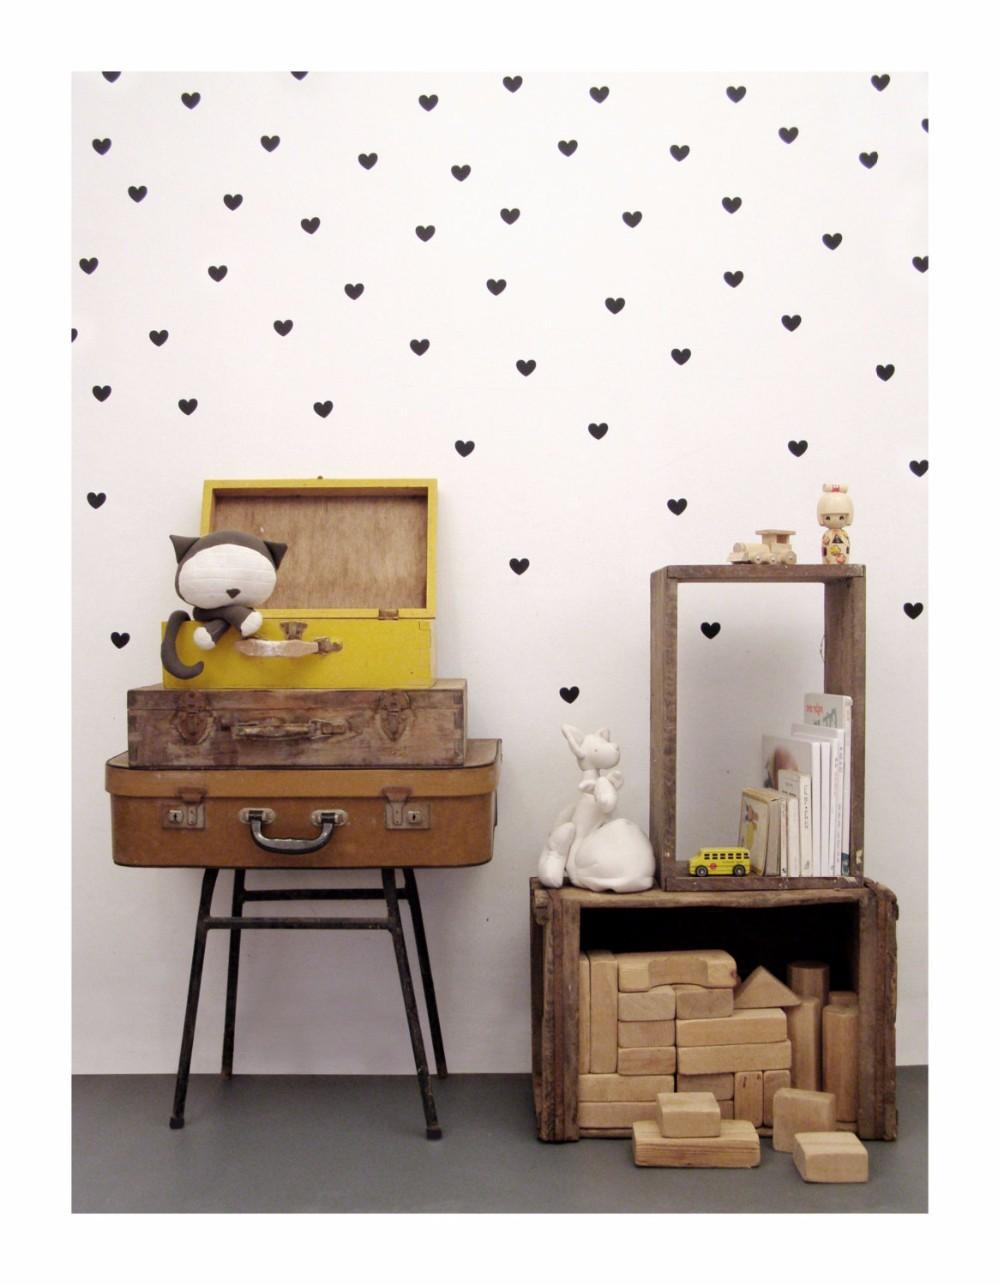 45 pcs Hearts pattern cute home decoration Wall Sticker Removable Waterproof PVC No Pollution material for kids room decal